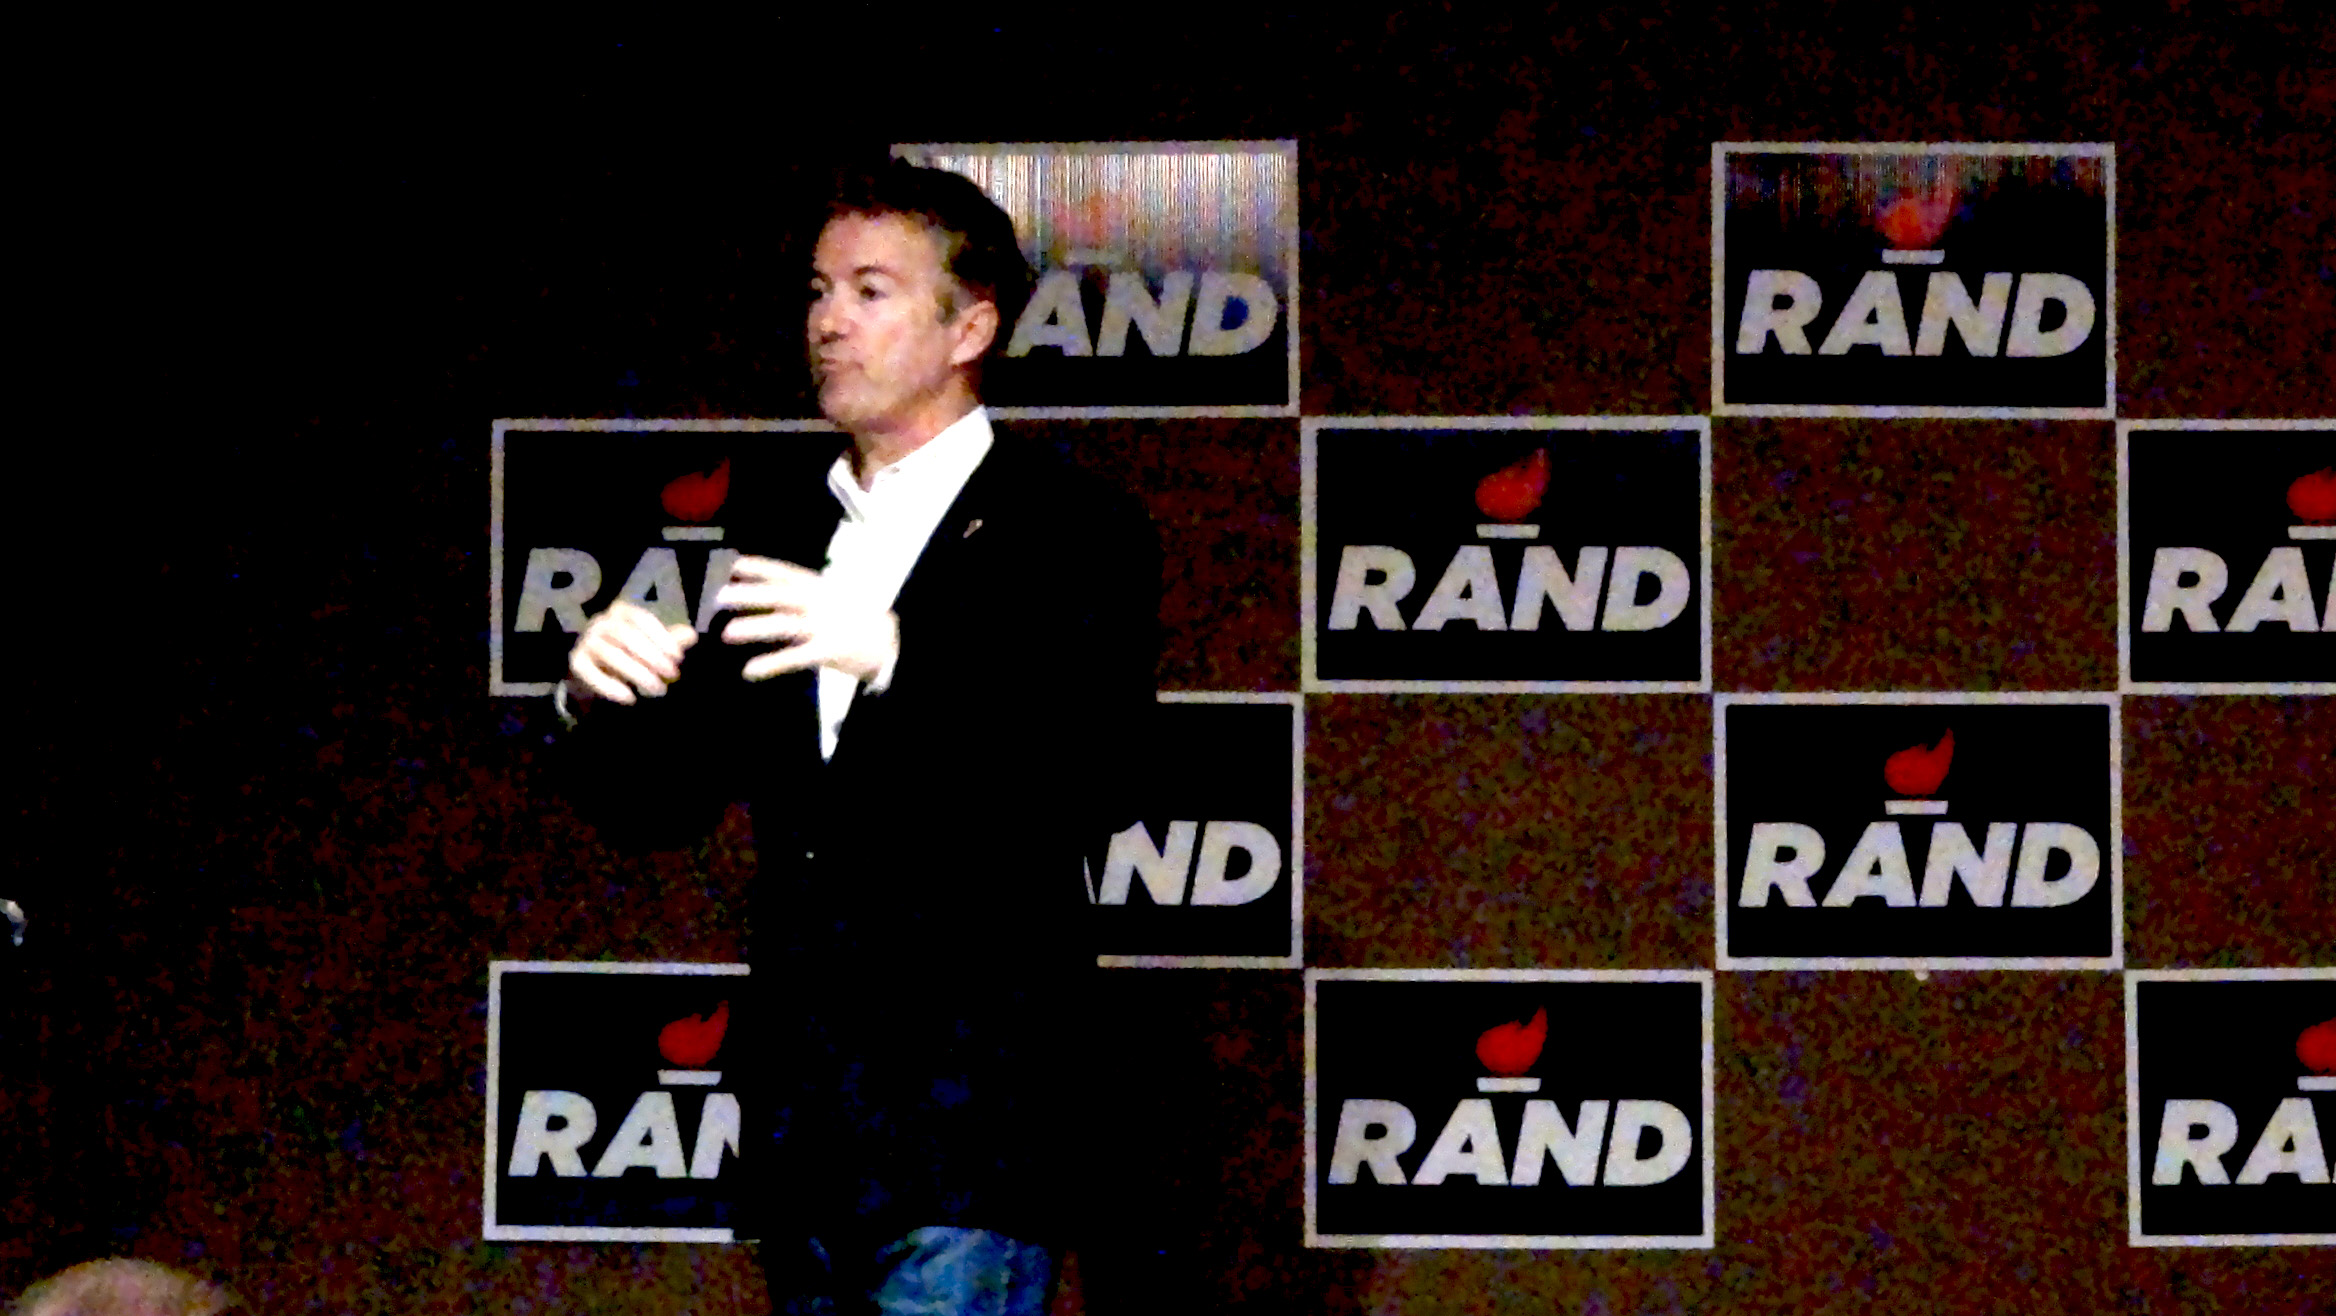 Rand Paul make stump speech in Rochester Minnesota. -photo by Jeremy Griffith